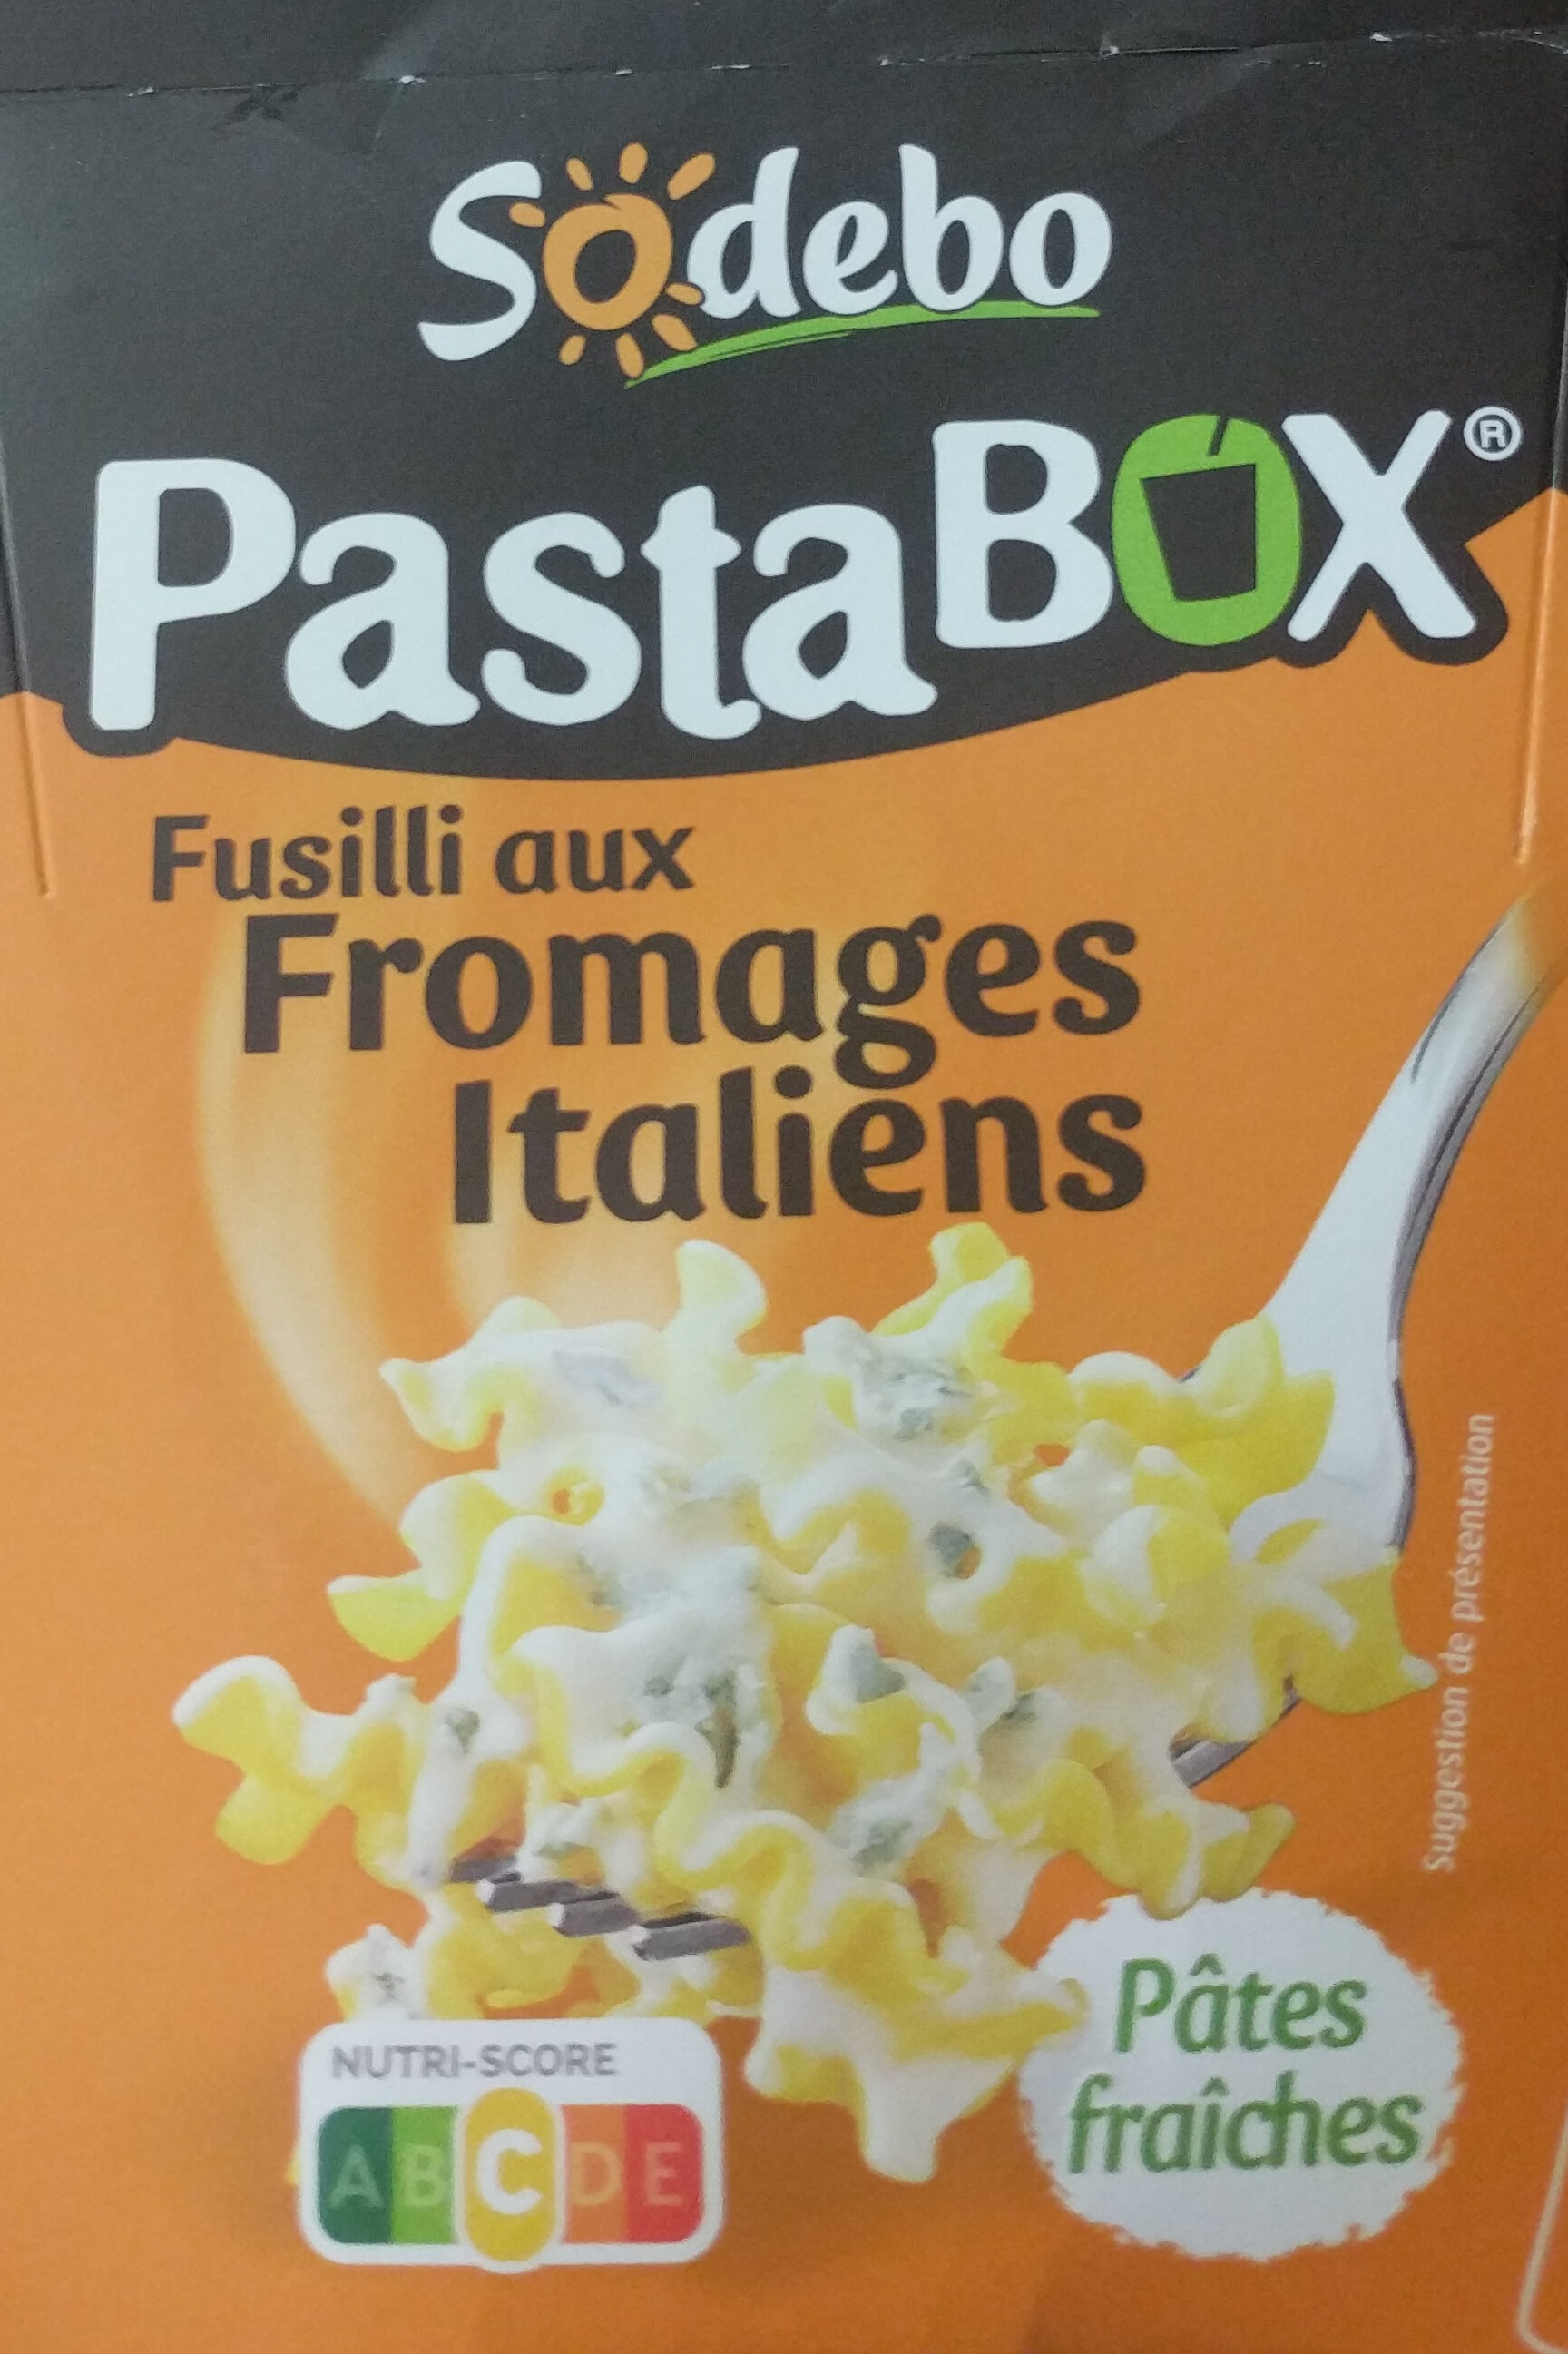 PastaBox - Fusilli aux Fromages italiens - Product